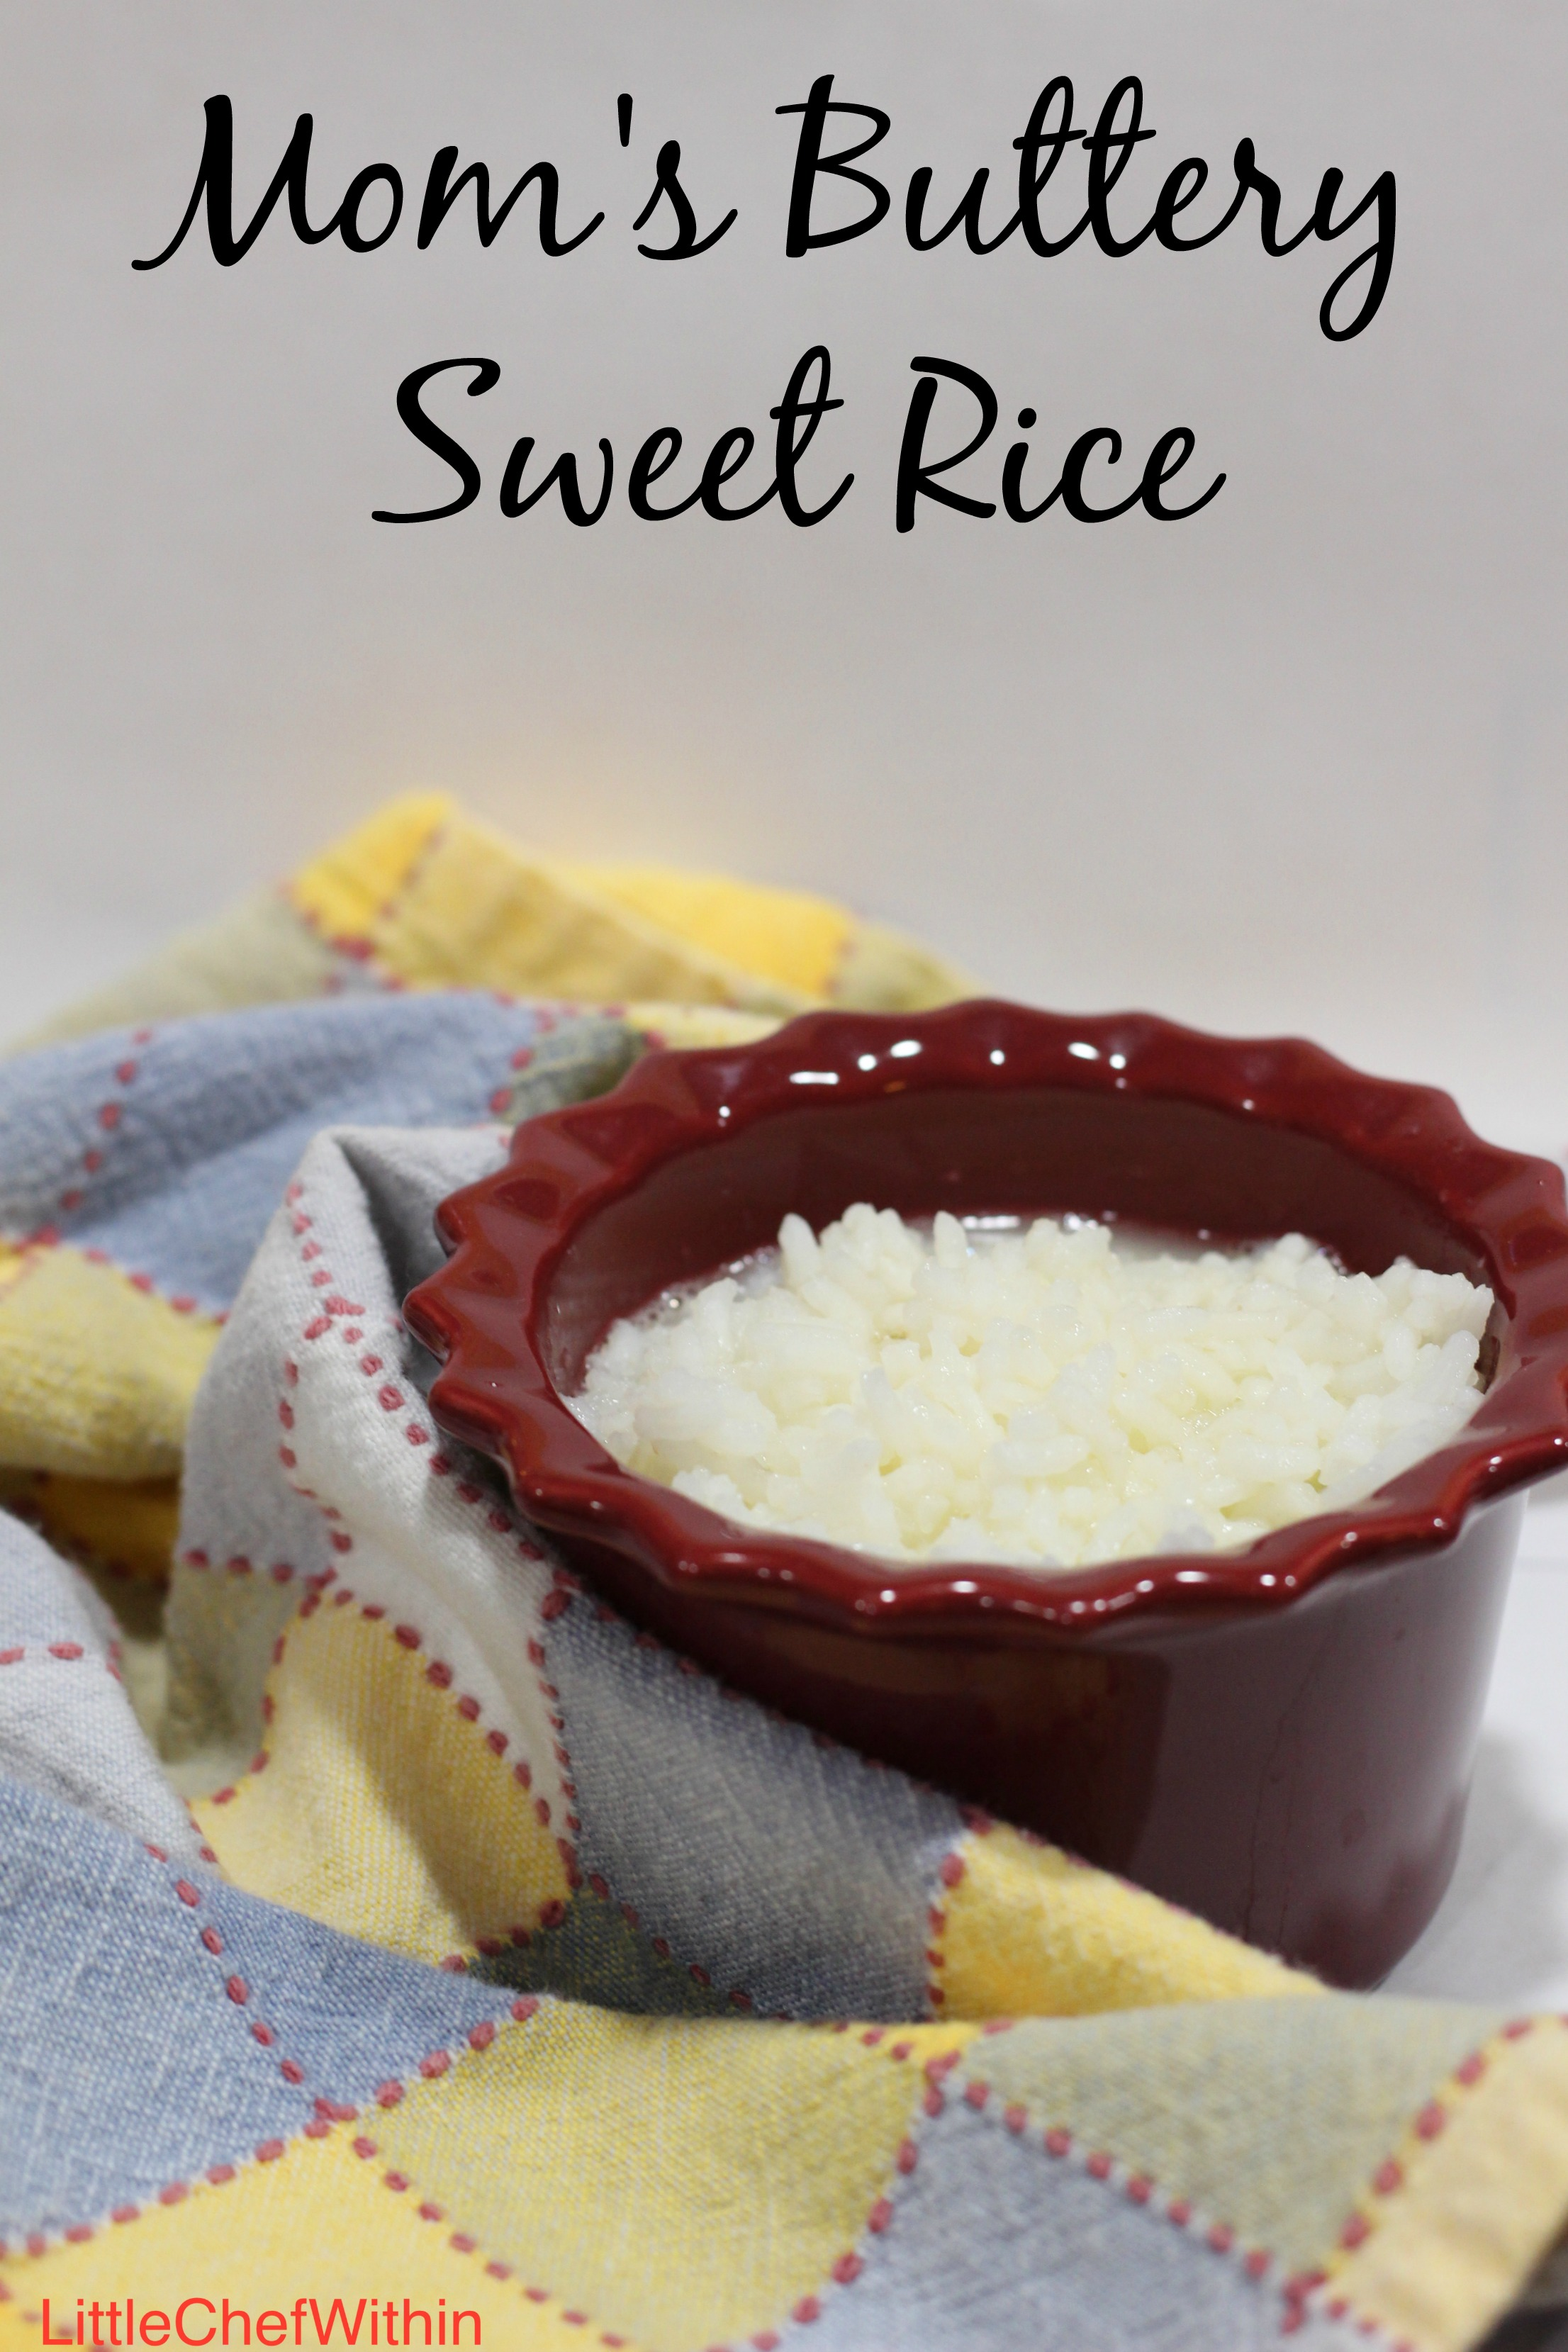 Mom's Buttery Sweet Rice